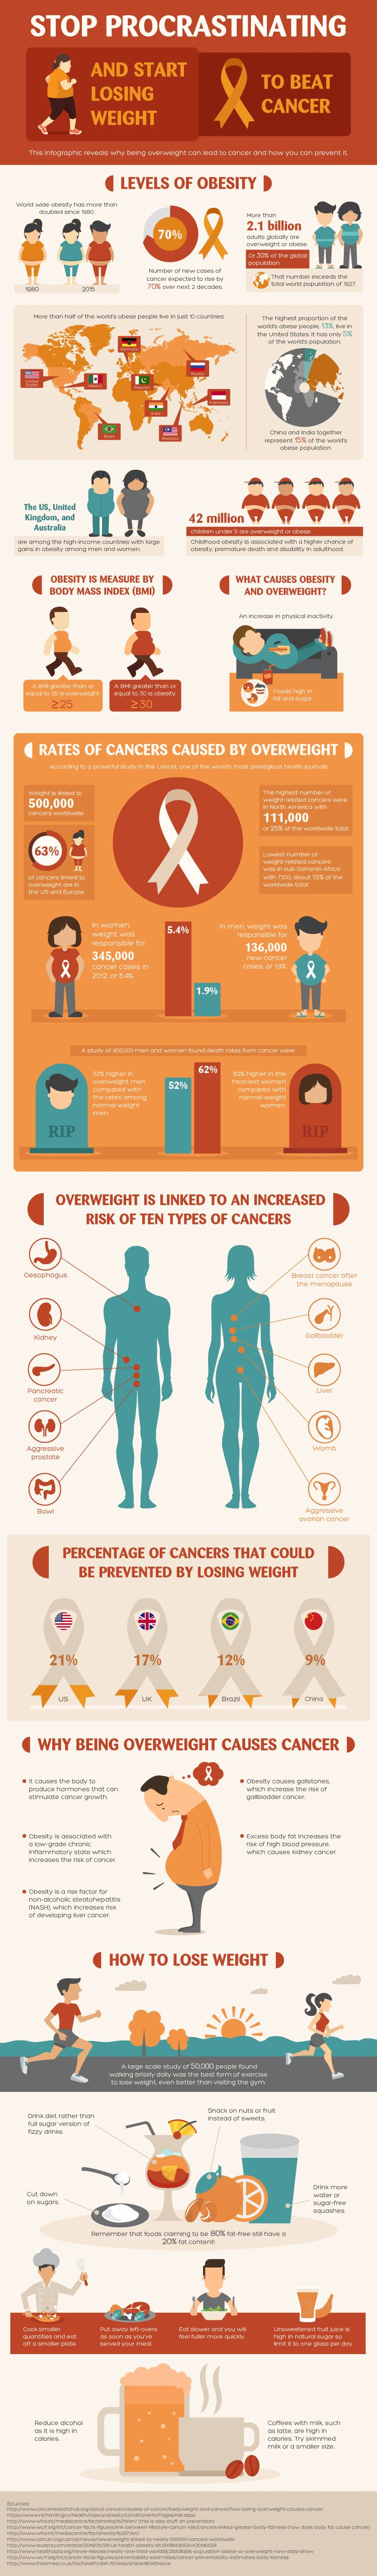 Understand How Obesity Can Cause Cancer